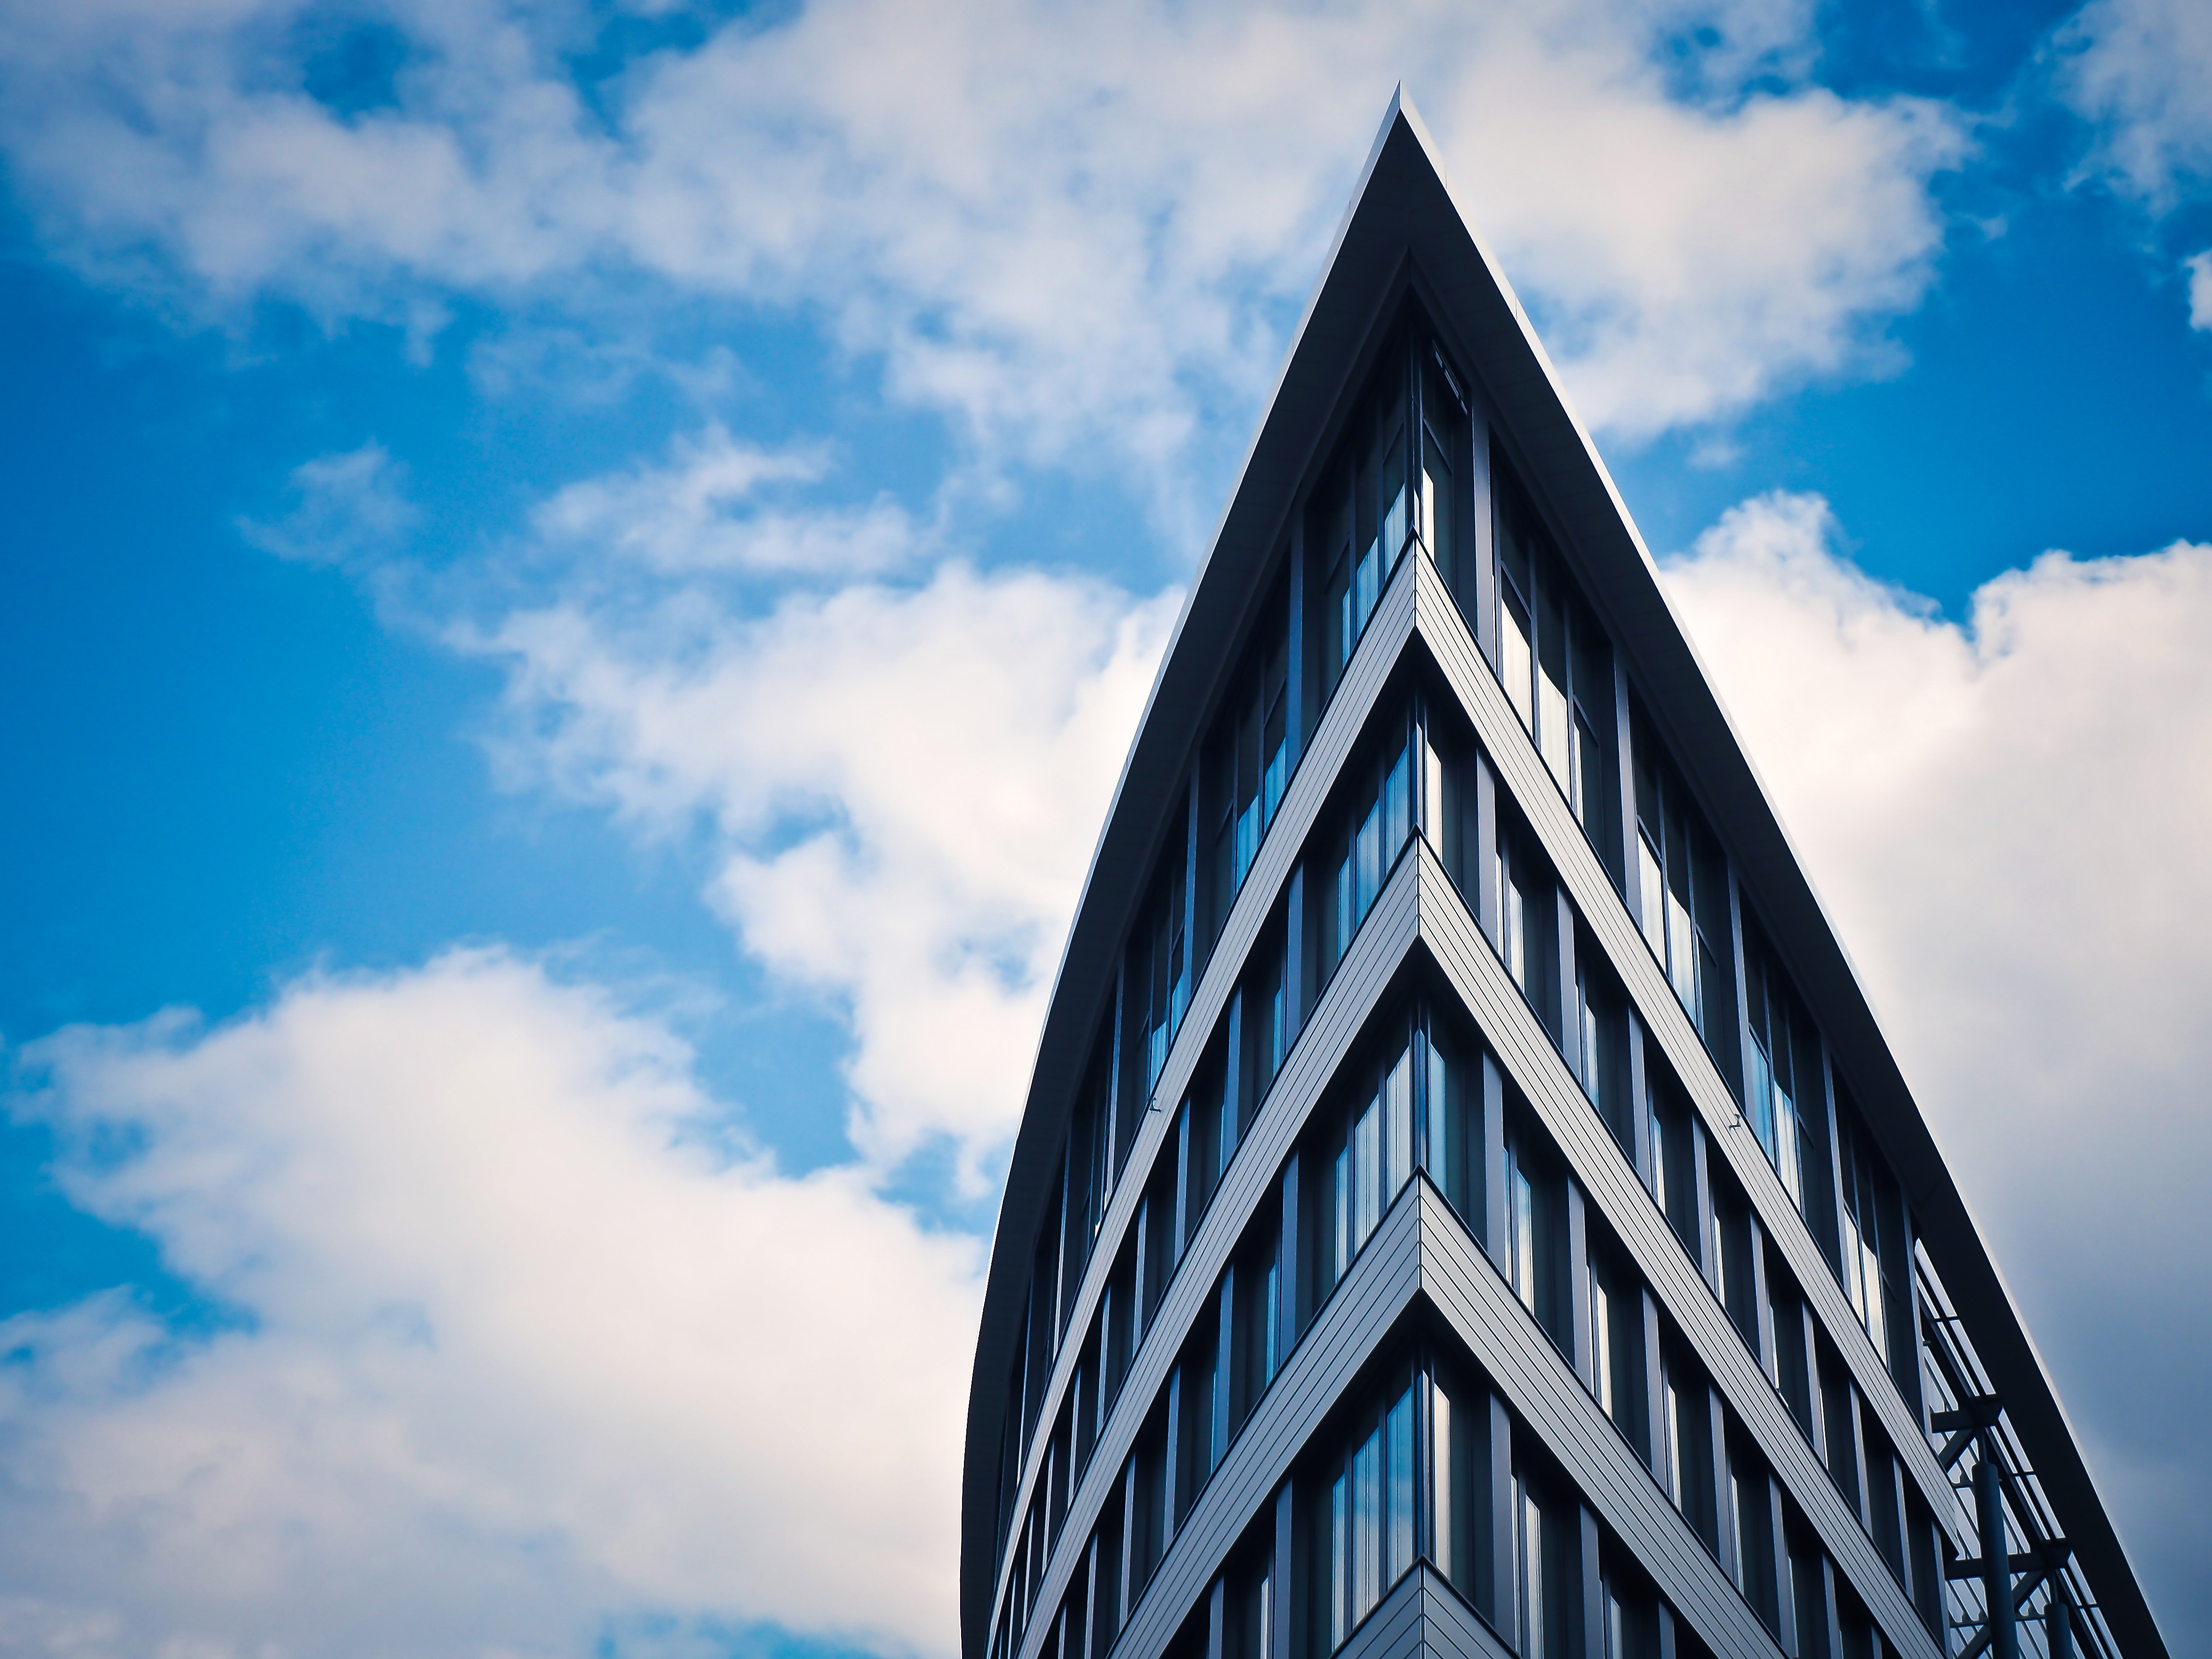 Low Angle View of Building Against Cloudy Sky · Free Stock Photo